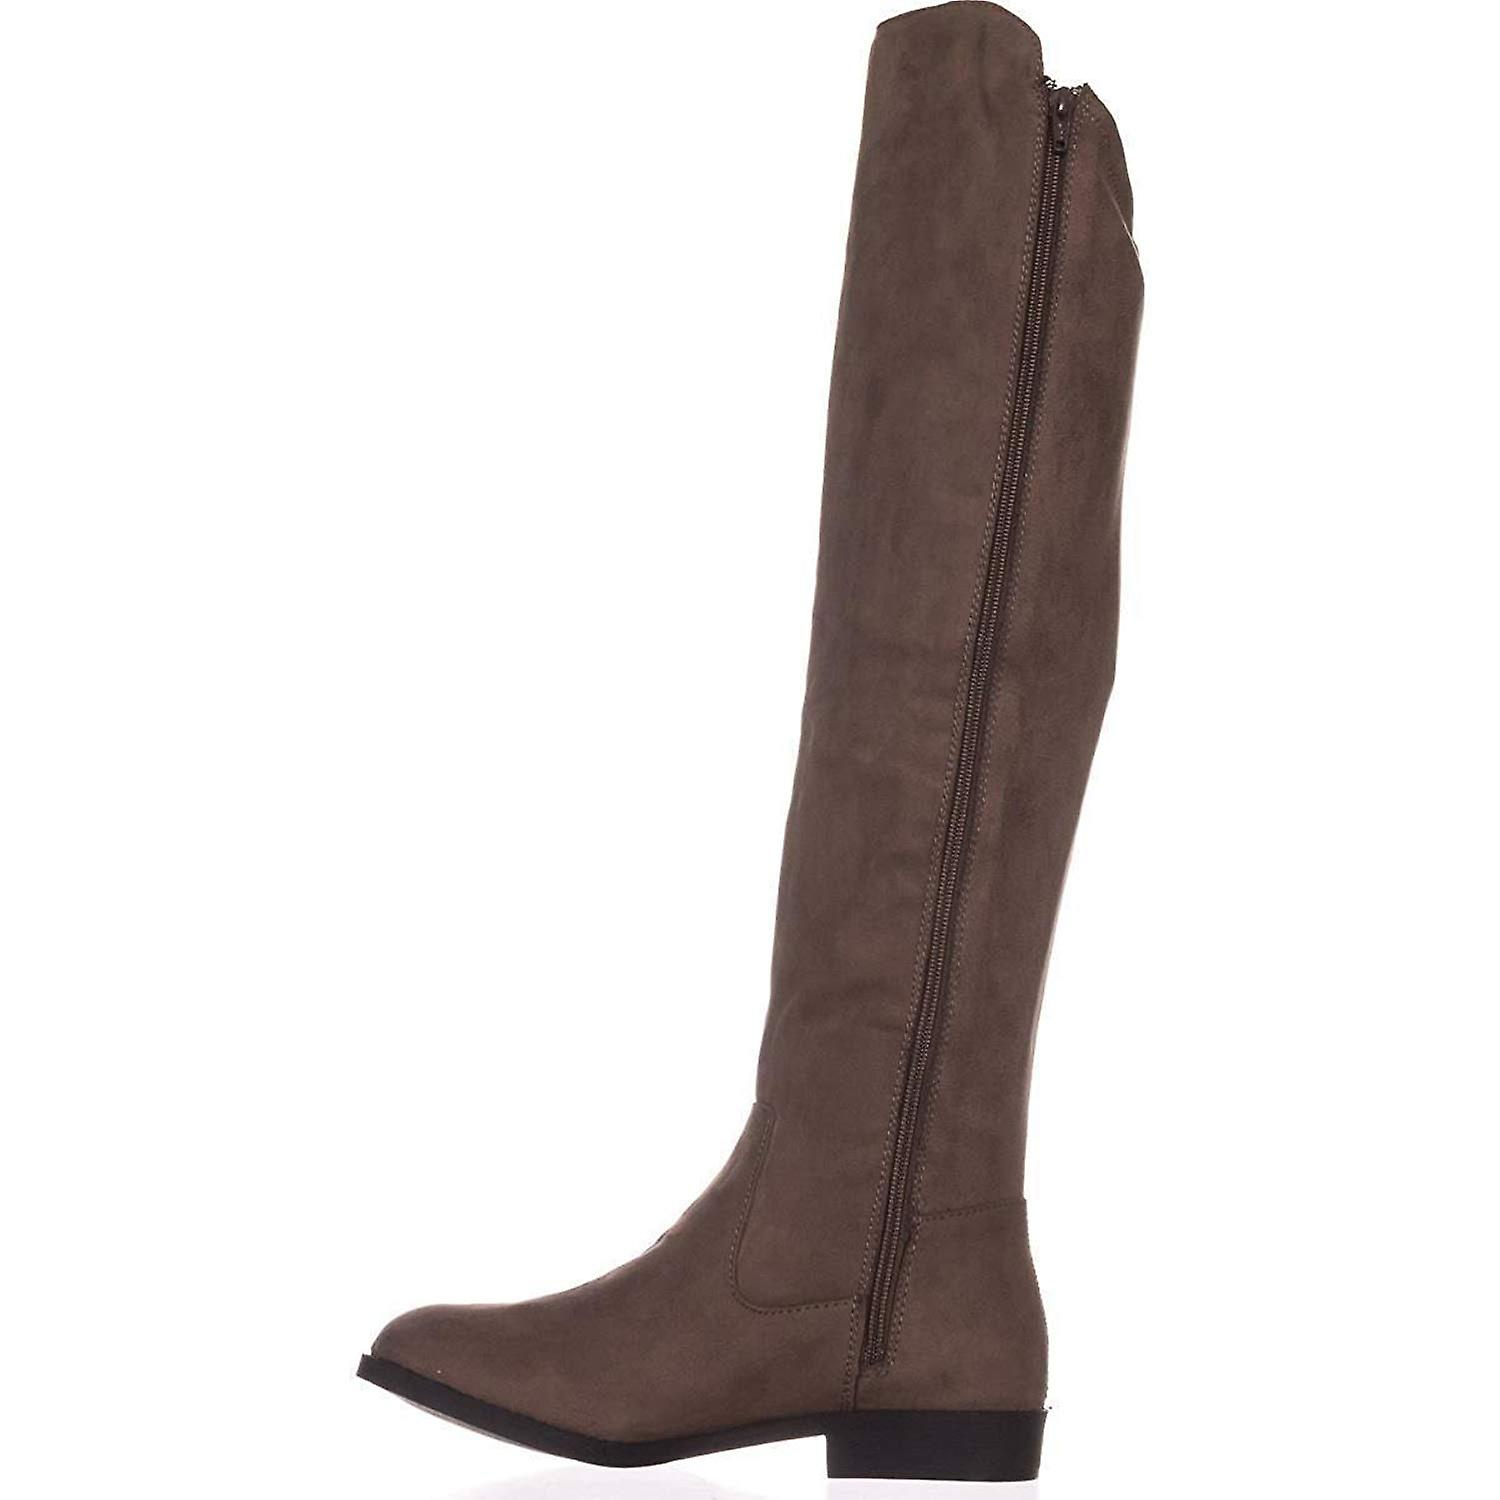 Style & Co. Womens Hadleyy Almond Toe Knee High Fashion Boots kCMsn